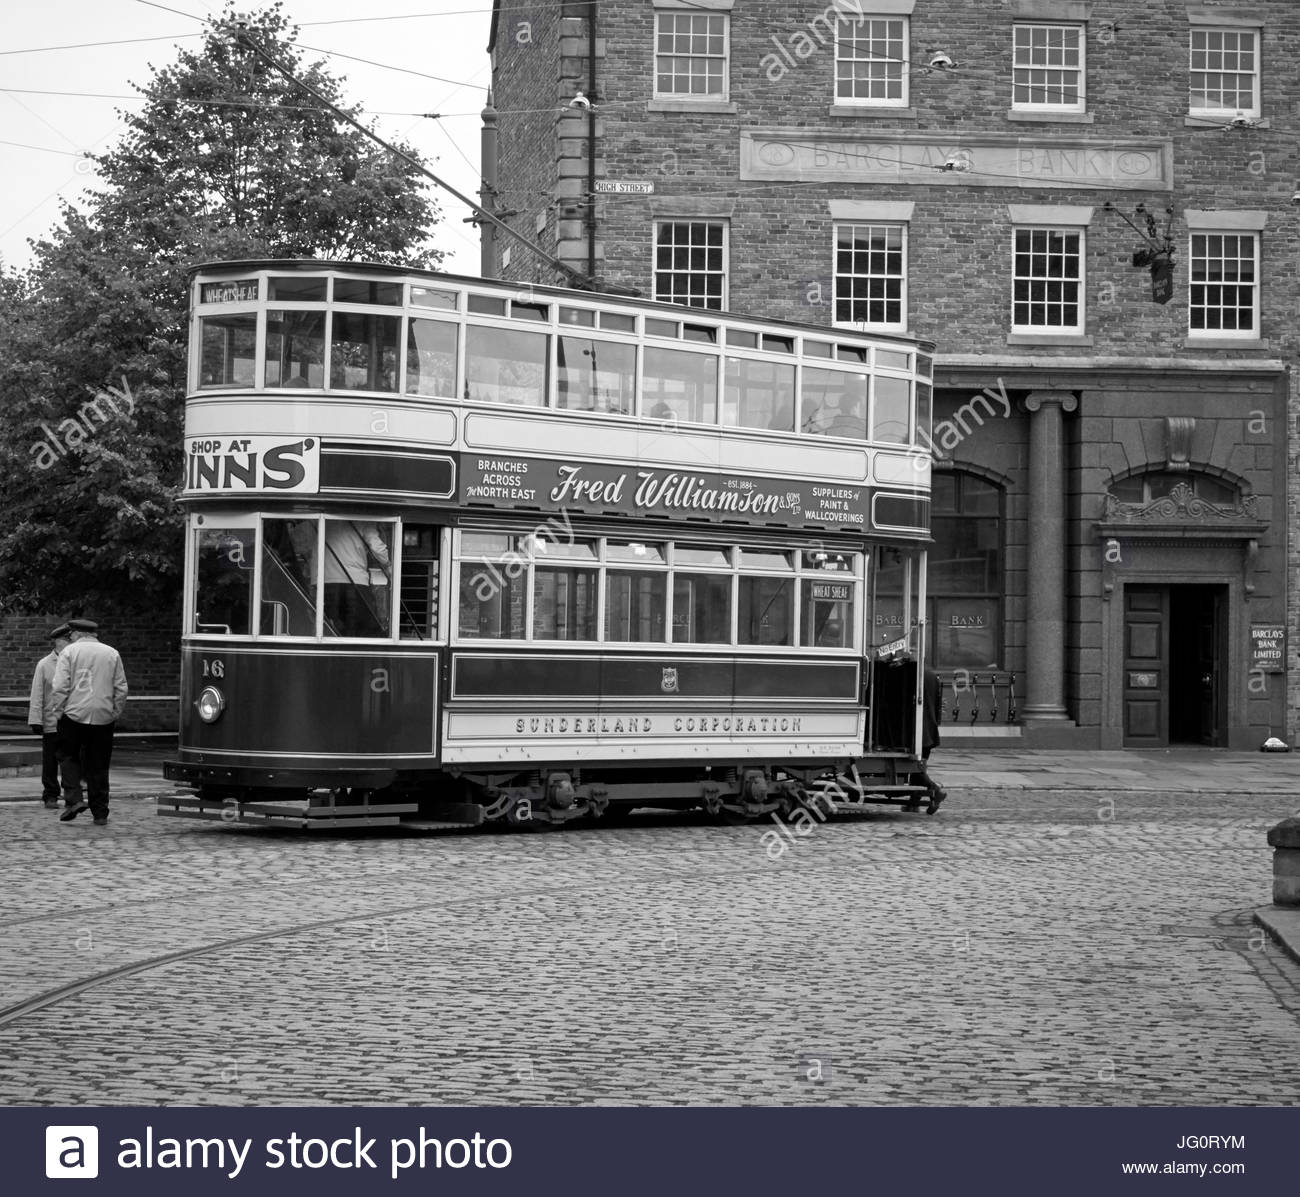 A Sunderland Corporation electric tram stopped outside Barclays Bank in Beamish open air museum in Durham England - Stock Image